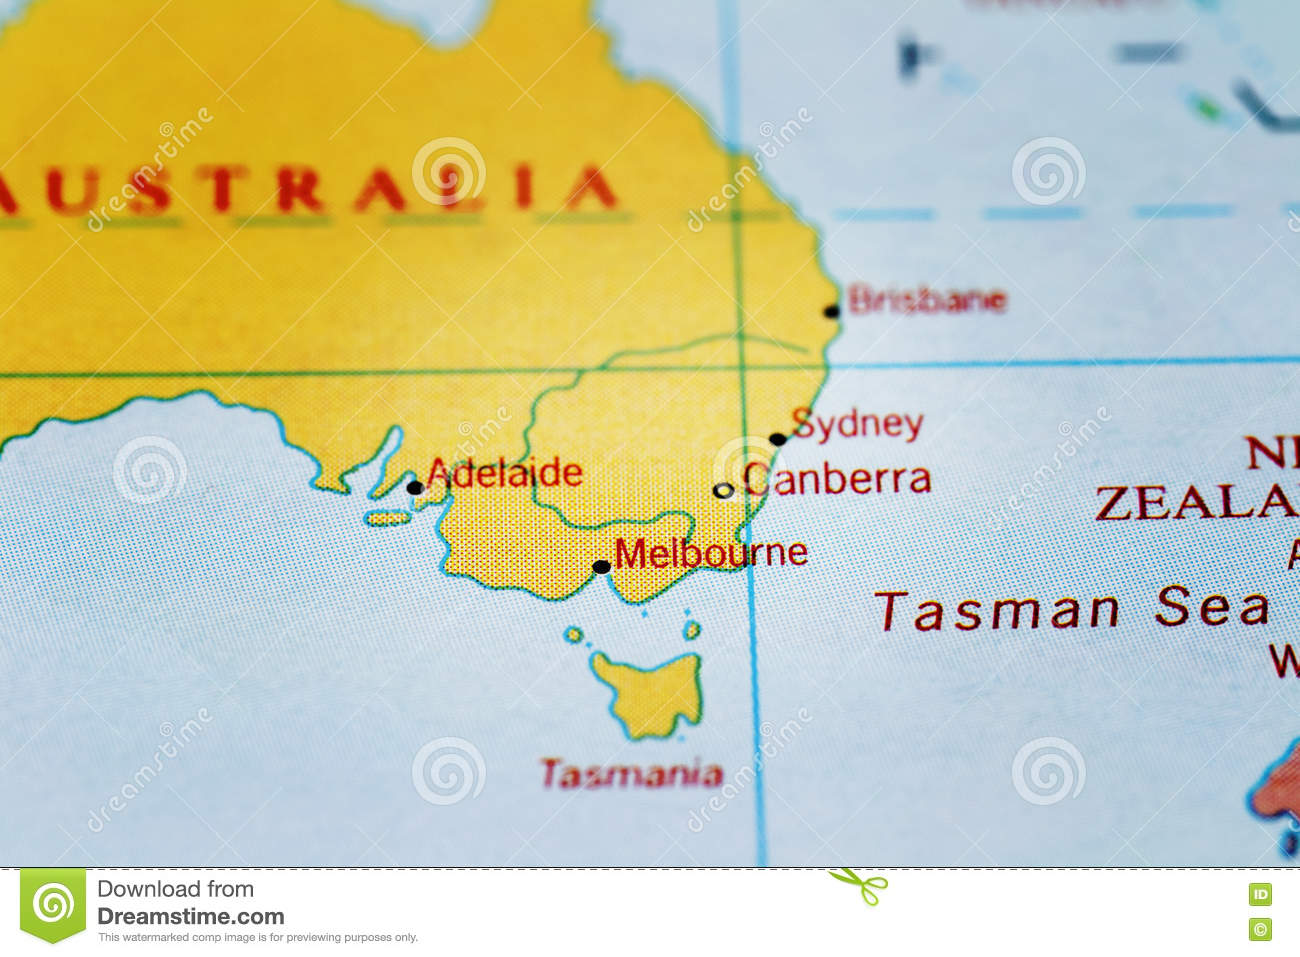 Australia Map Melbourne.Canberra Sydney Melbourne Adelaide And Australia On Map Stock